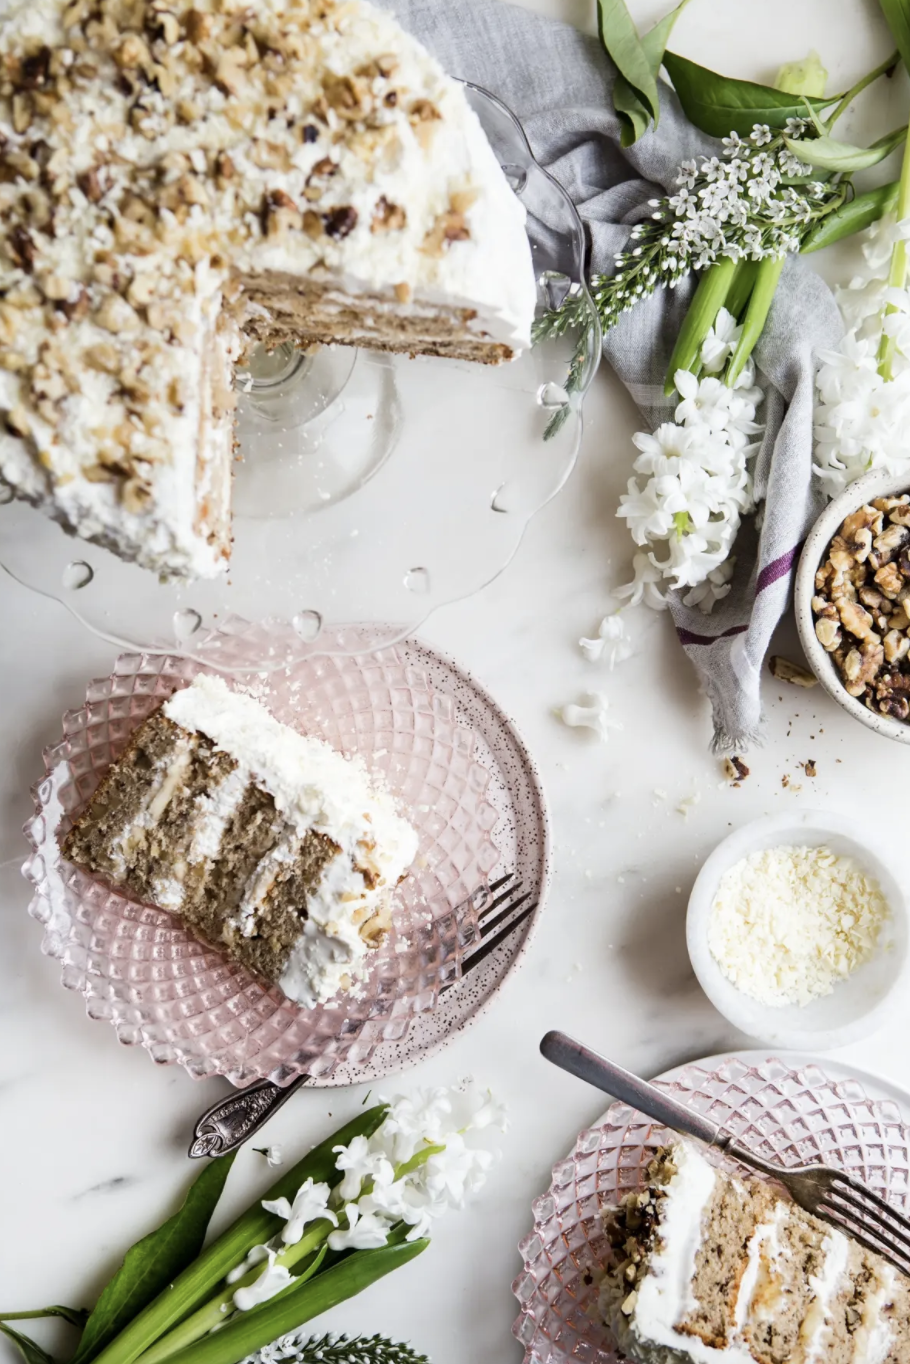 "<p>A creamy, rich banana walnut layer cake is an obvious spring bite! It'll be the perfect Easter dessert centerpiece.</p><p><strong>Get the recipe at <a href=""https://themodernproper.com/banana-walnut-cake"" rel=""nofollow noopener"" target=""_blank"" data-ylk=""slk:The Modern Proper"" class=""link rapid-noclick-resp"">The Modern Proper</a>.</strong></p><p><strong><a class=""link rapid-noclick-resp"" href=""https://go.redirectingat.com?id=74968X1596630&url=https%3A%2F%2Fwww.walmart.com%2Fsearch%2F%3Fquery%3Dcake%2Bpans&sref=https%3A%2F%2Fwww.thepioneerwoman.com%2Ffood-cooking%2Fmeals-menus%2Fg35408493%2Feaster-desserts%2F"" rel=""nofollow noopener"" target=""_blank"" data-ylk=""slk:SHOP CAKE PANS"">SHOP CAKE PANS</a><br></strong></p>"